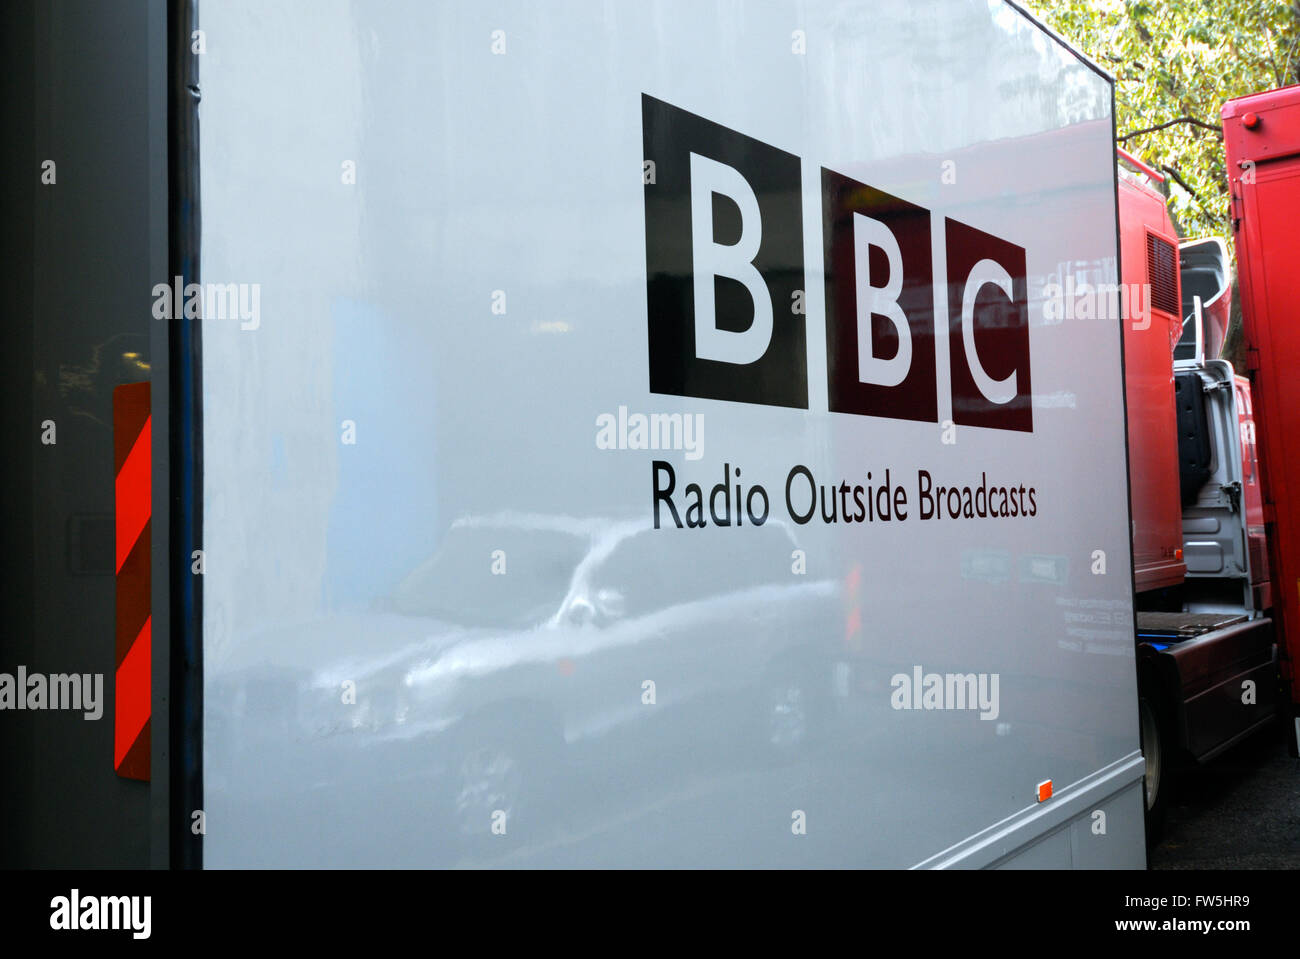 BBC outside broadcast recording van, parked outside concert hall - Stock Image